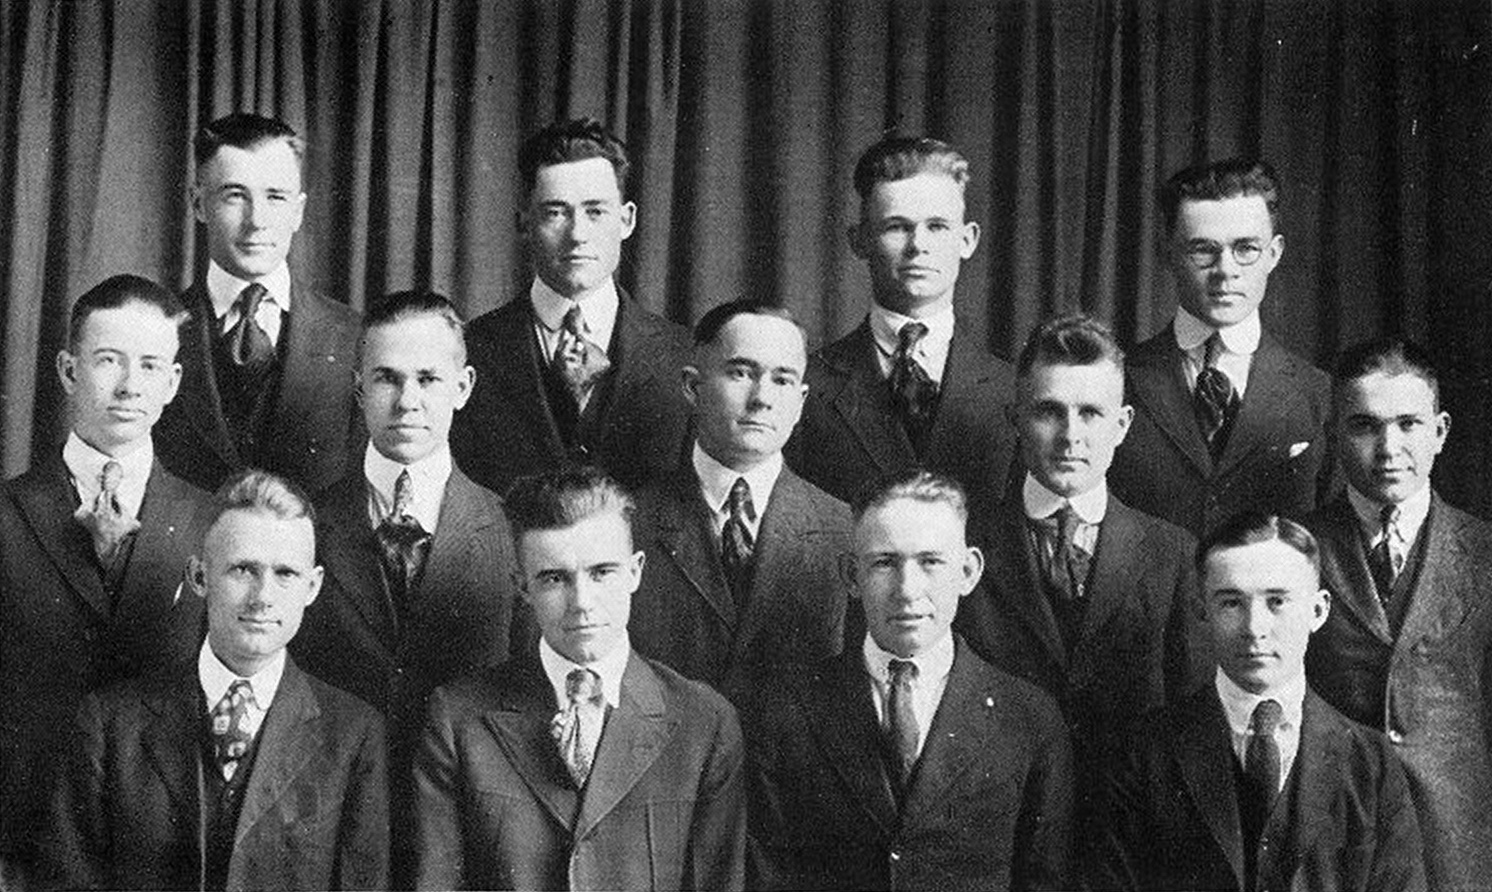 File:Kappa Kappa Psi 1920.jpg - Wikimedia Commons